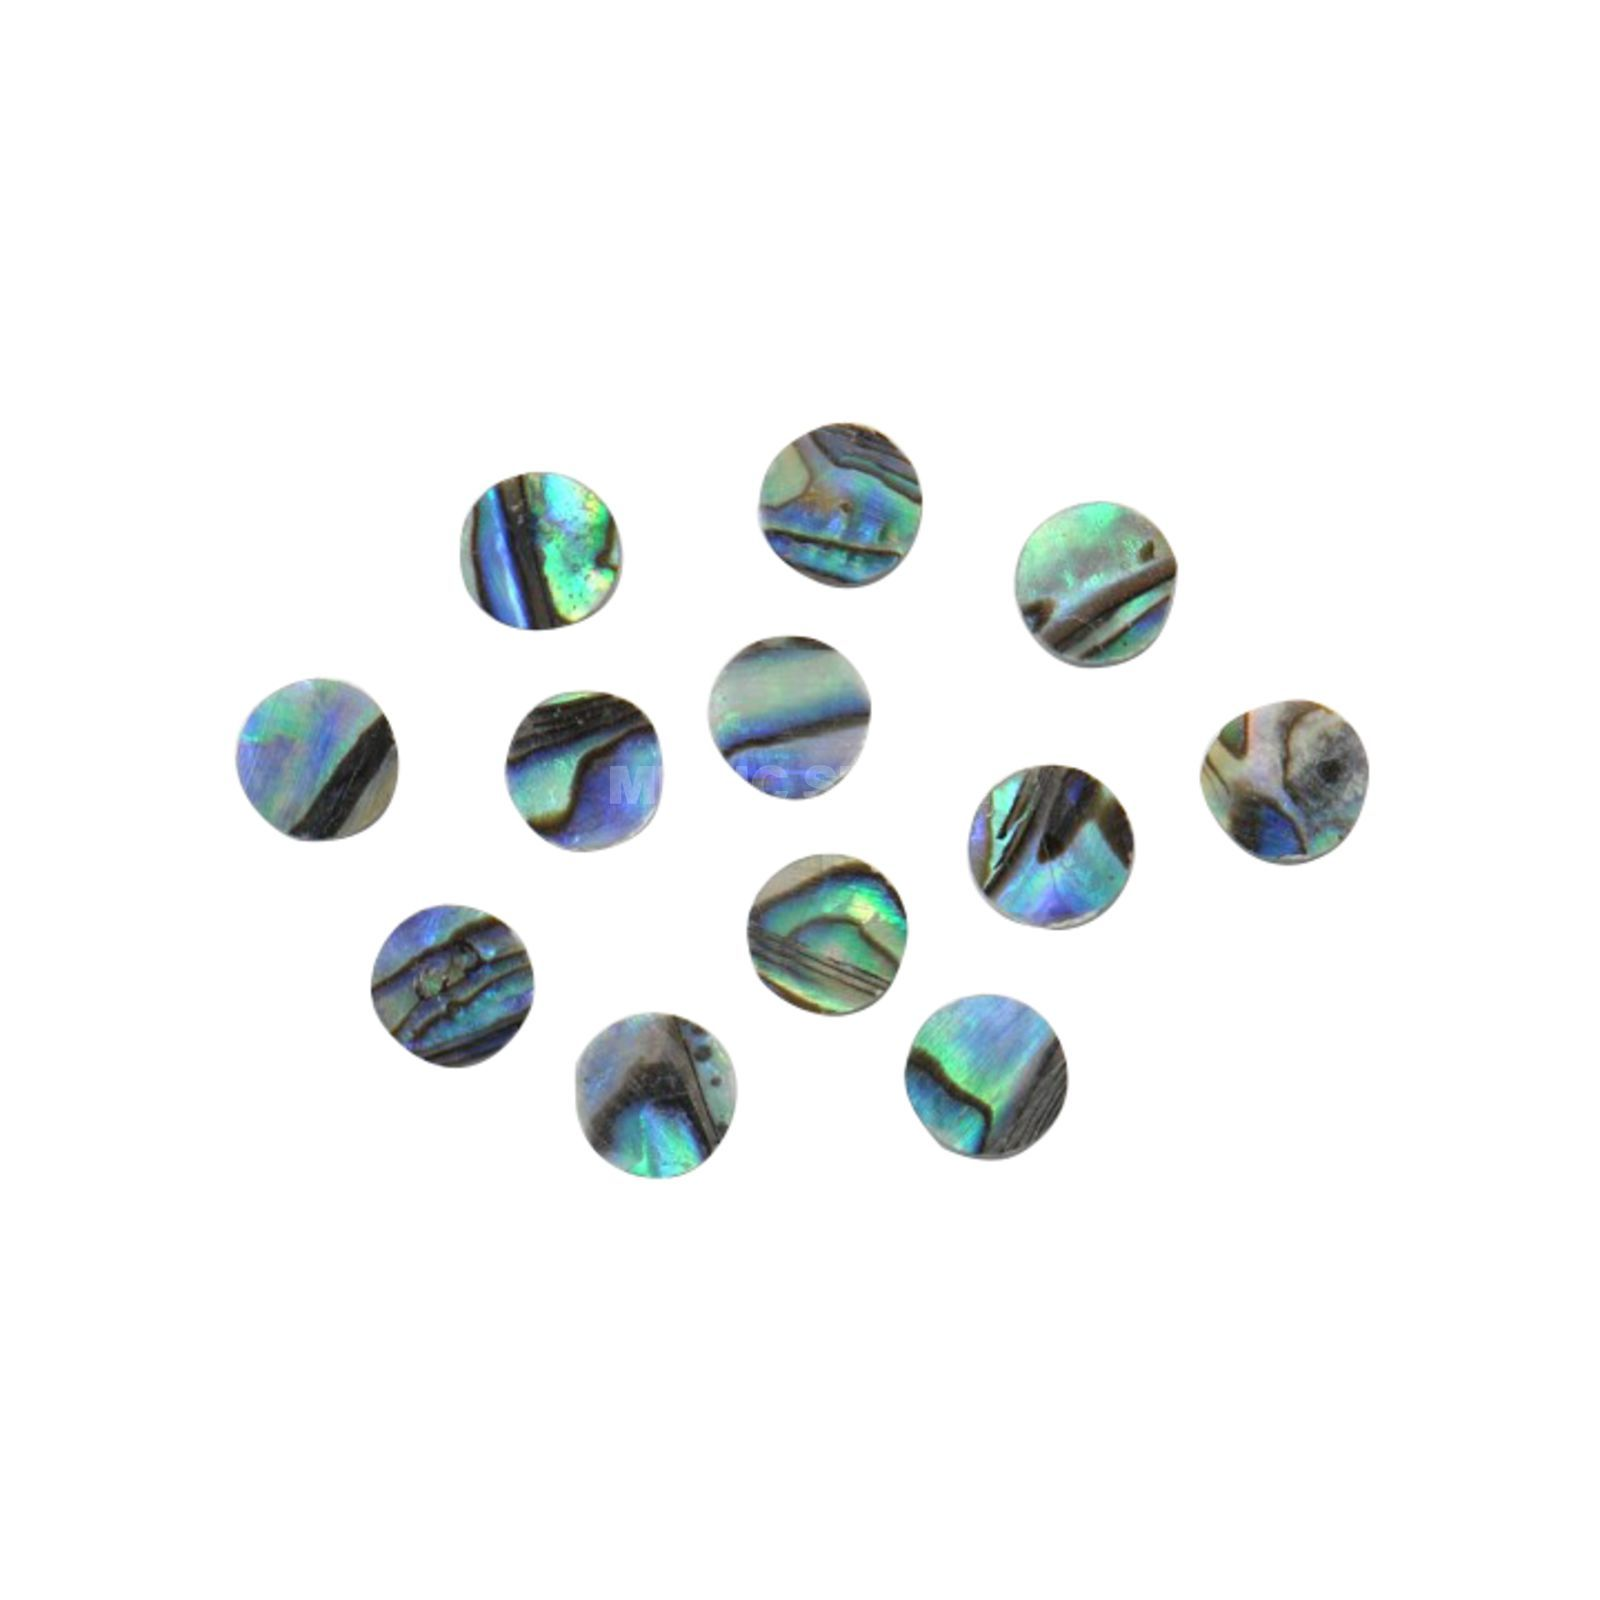 Göldo Dot 4,5mm Abalone 12er Pack Product Image